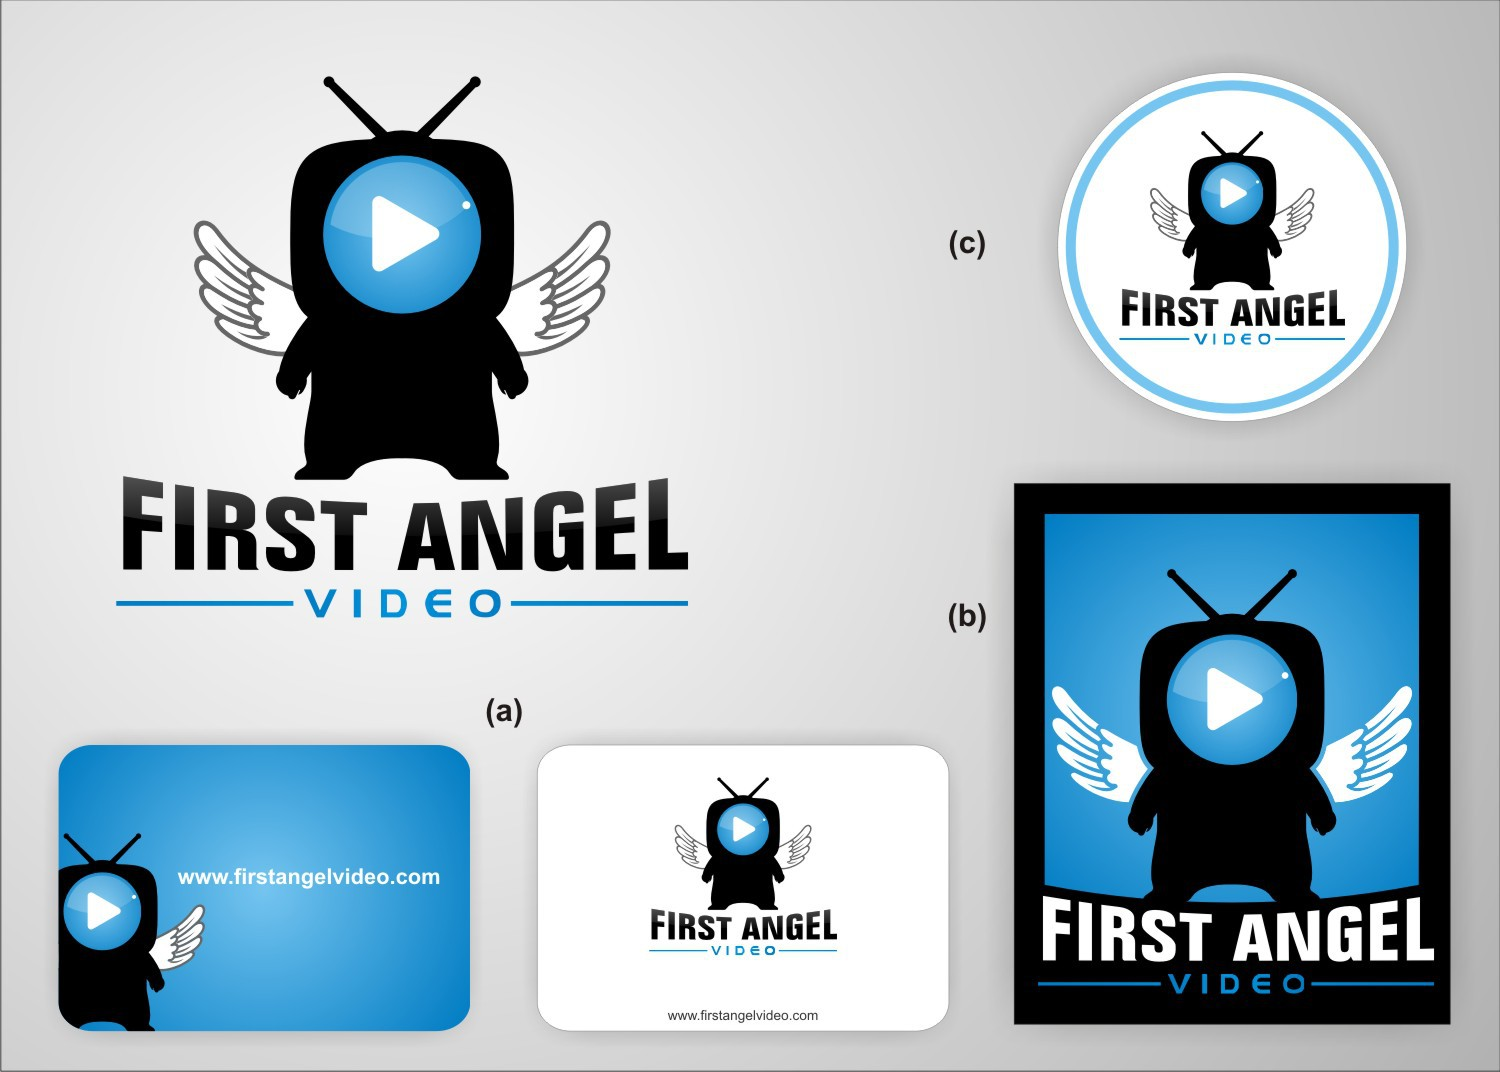 A designer's Dream Project??! First Angel Video wants a new logo!!